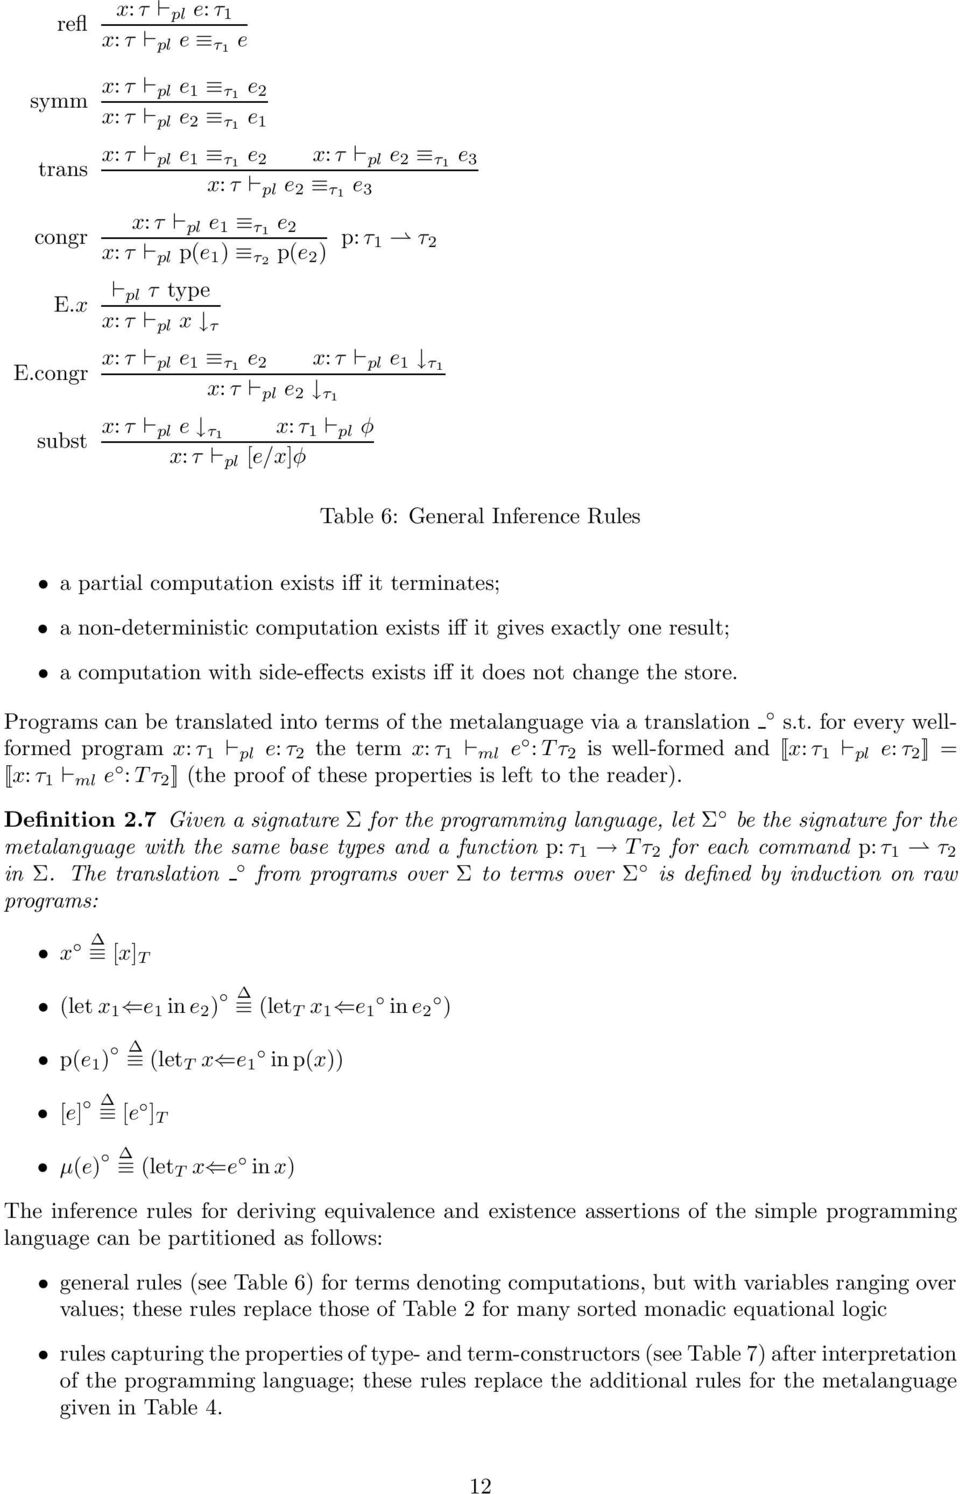 congr x: τ pl e 1 τ1 e 2 x: τ pl e 1 τ1 x: τ pl e 2 τ1 subst x: τ pl e τ1 x: τ 1 pl φ x: τ pl [e/x]φ Table 6: General Inference Rules a partial computation exists iff it terminates; a